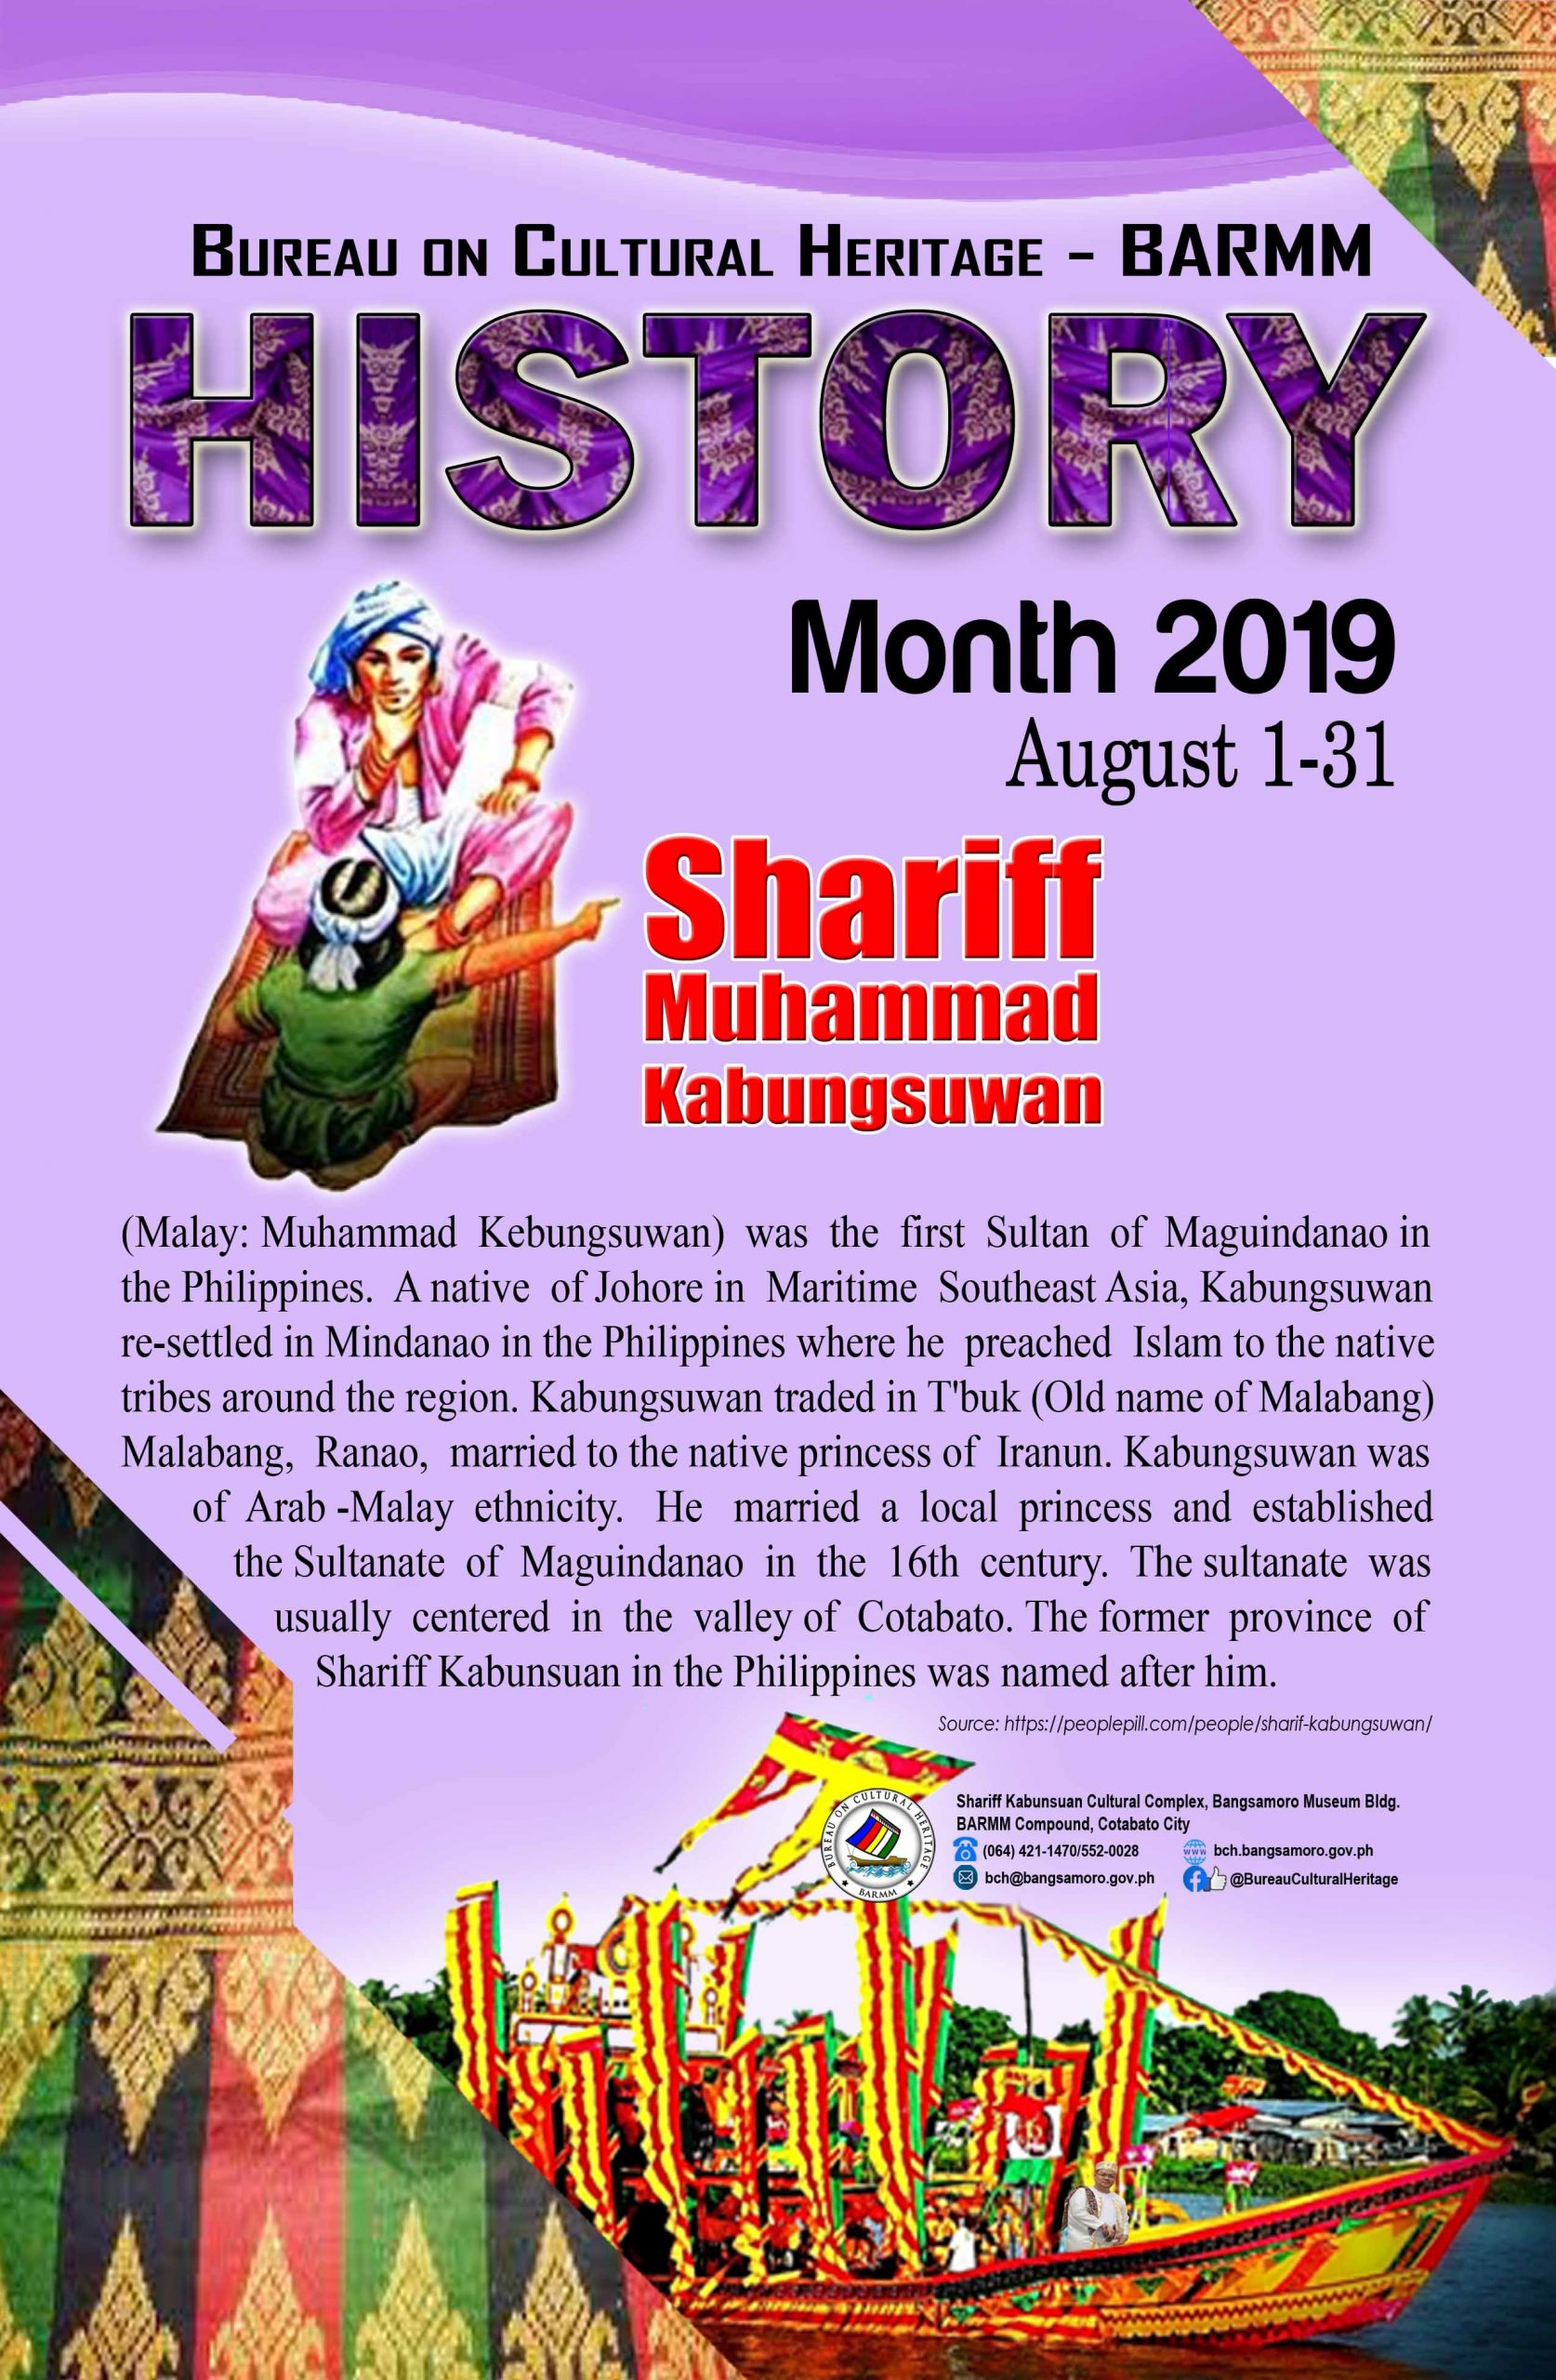 History Month August 2019 Maguindanao Shariff